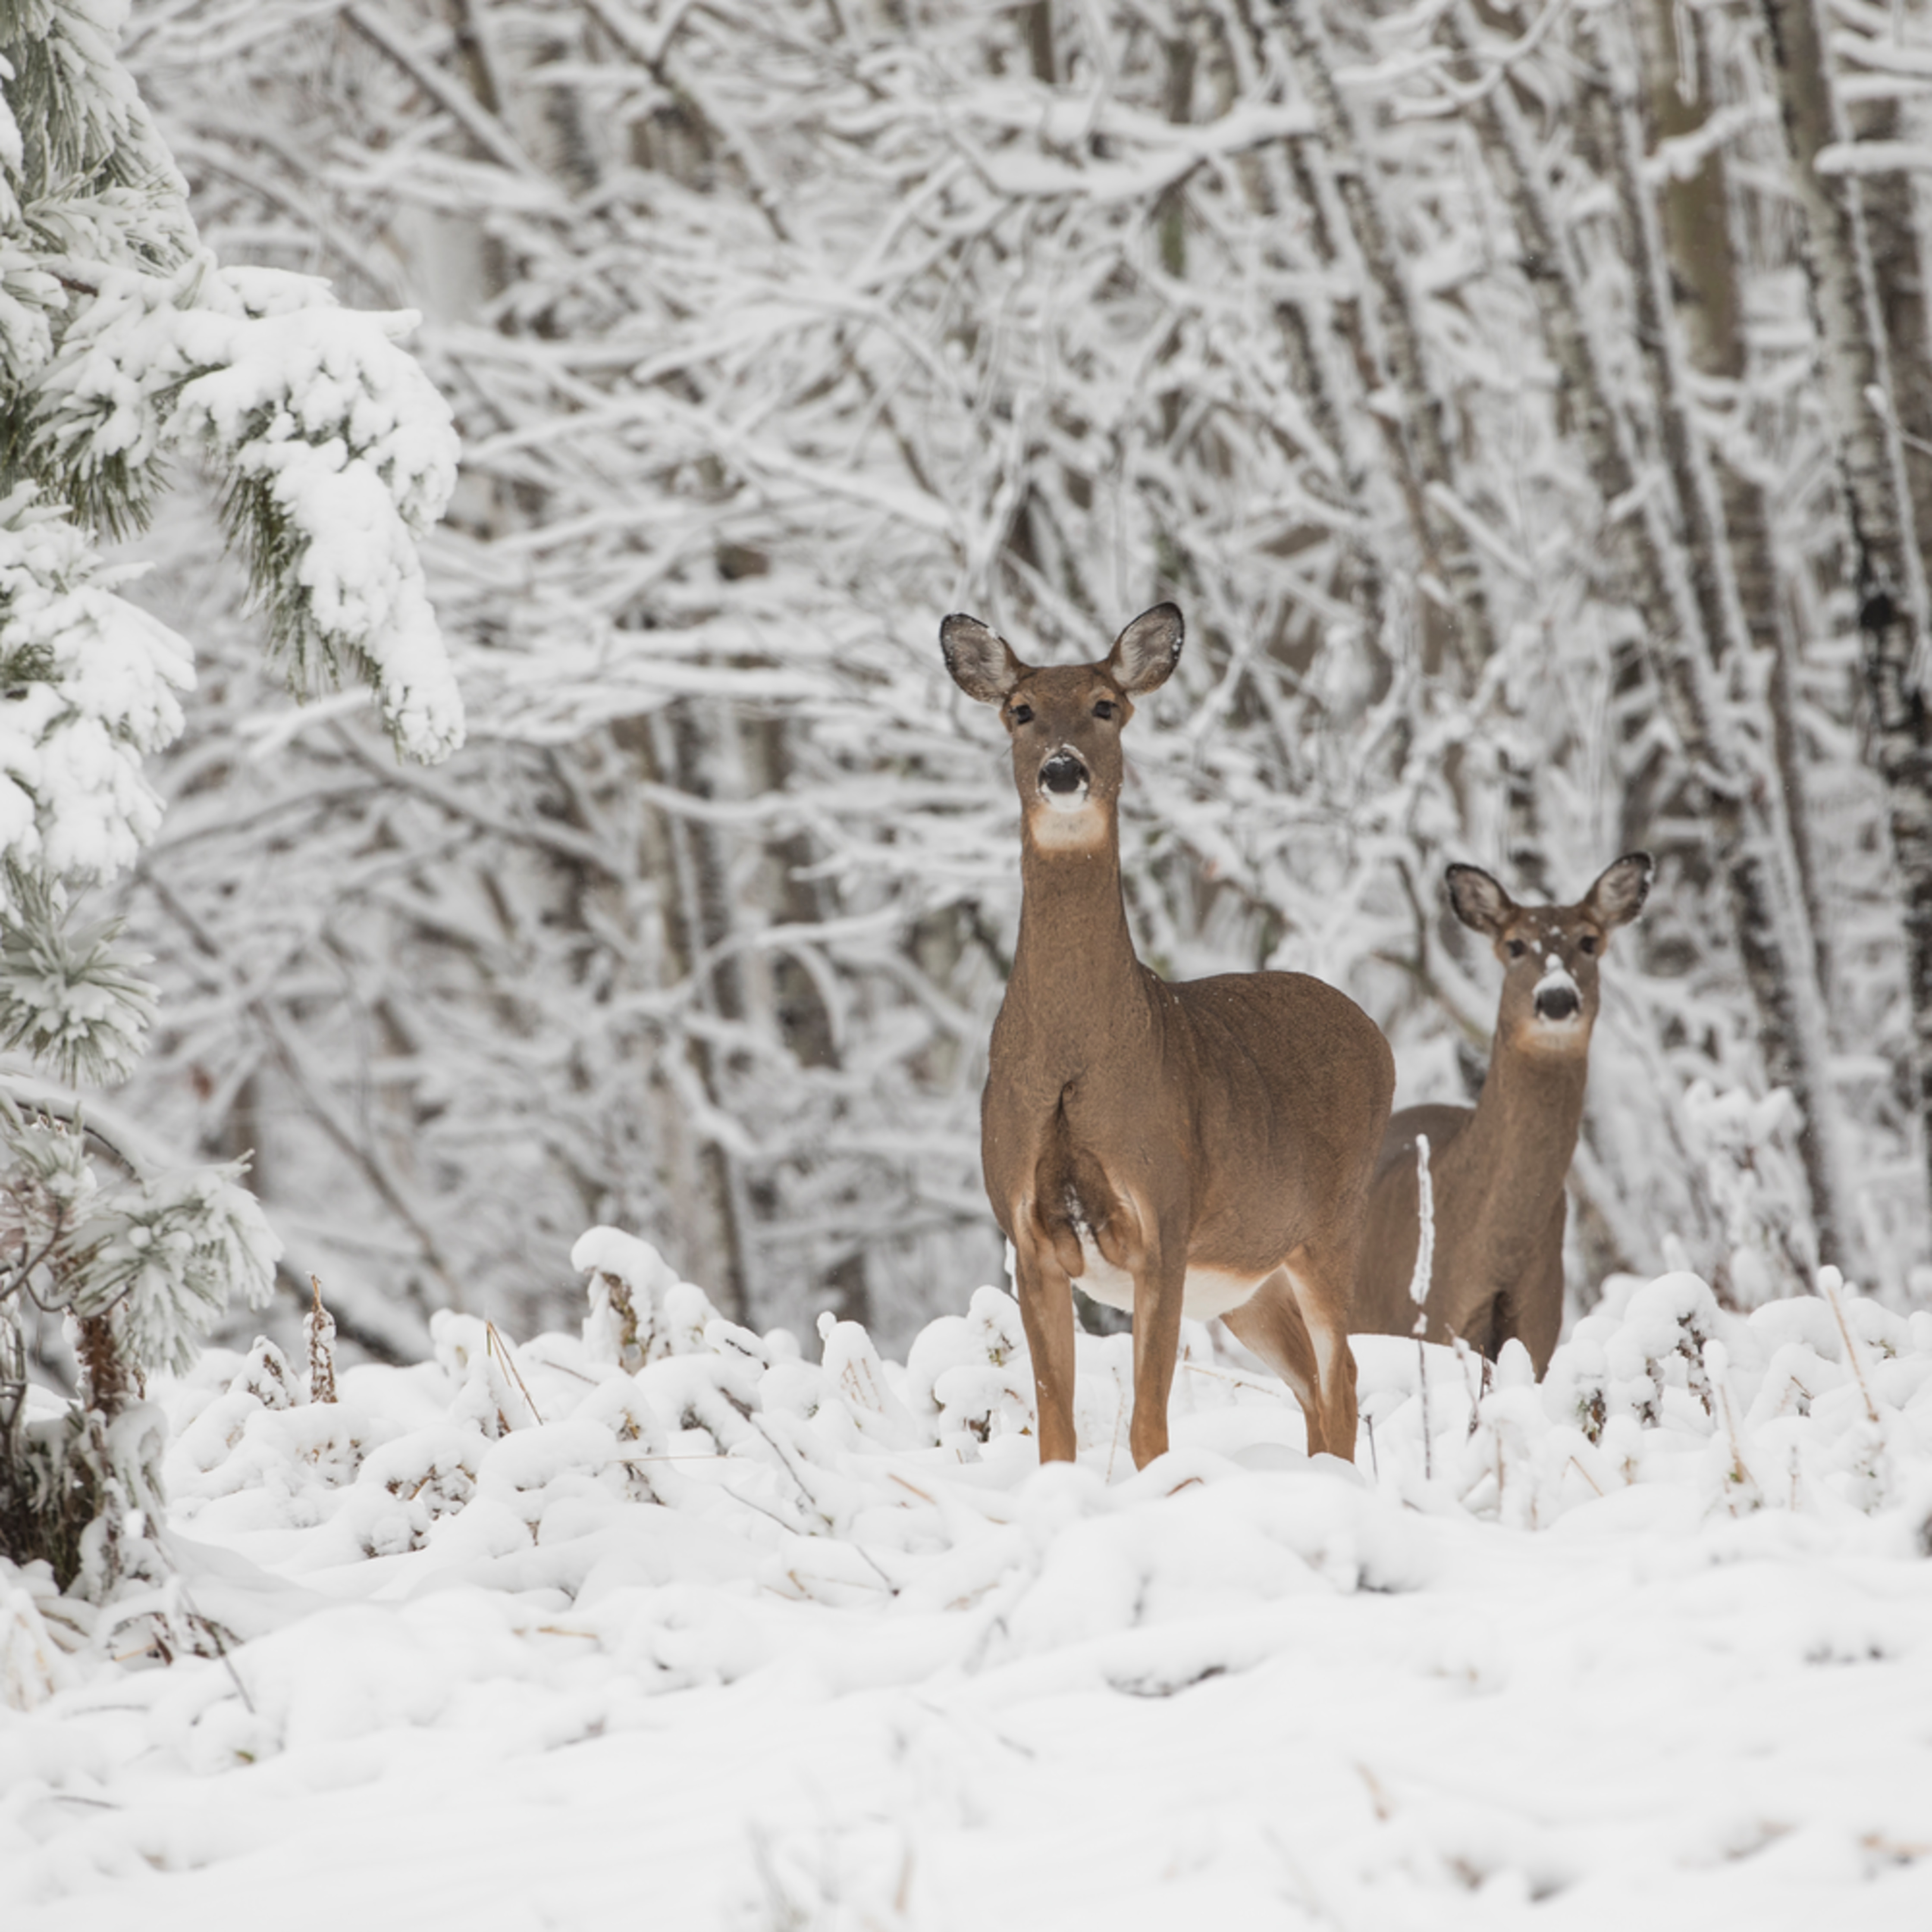 Whitetail deer in minnesota winterscapes fbs6k4